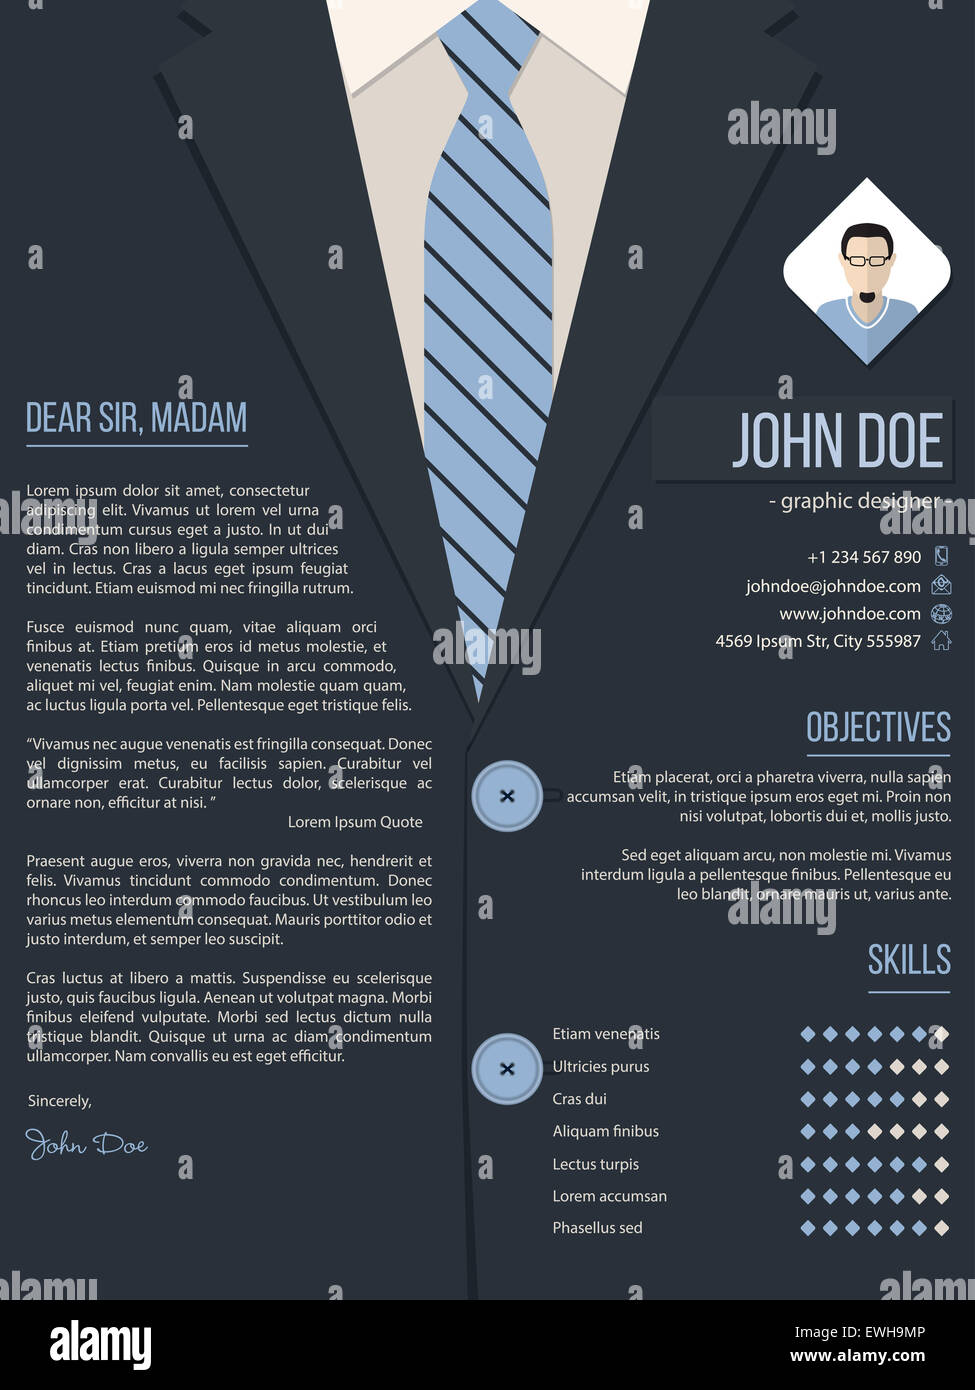 Cool Cover Letter Resume Cv Template Design With Business Suit Stock